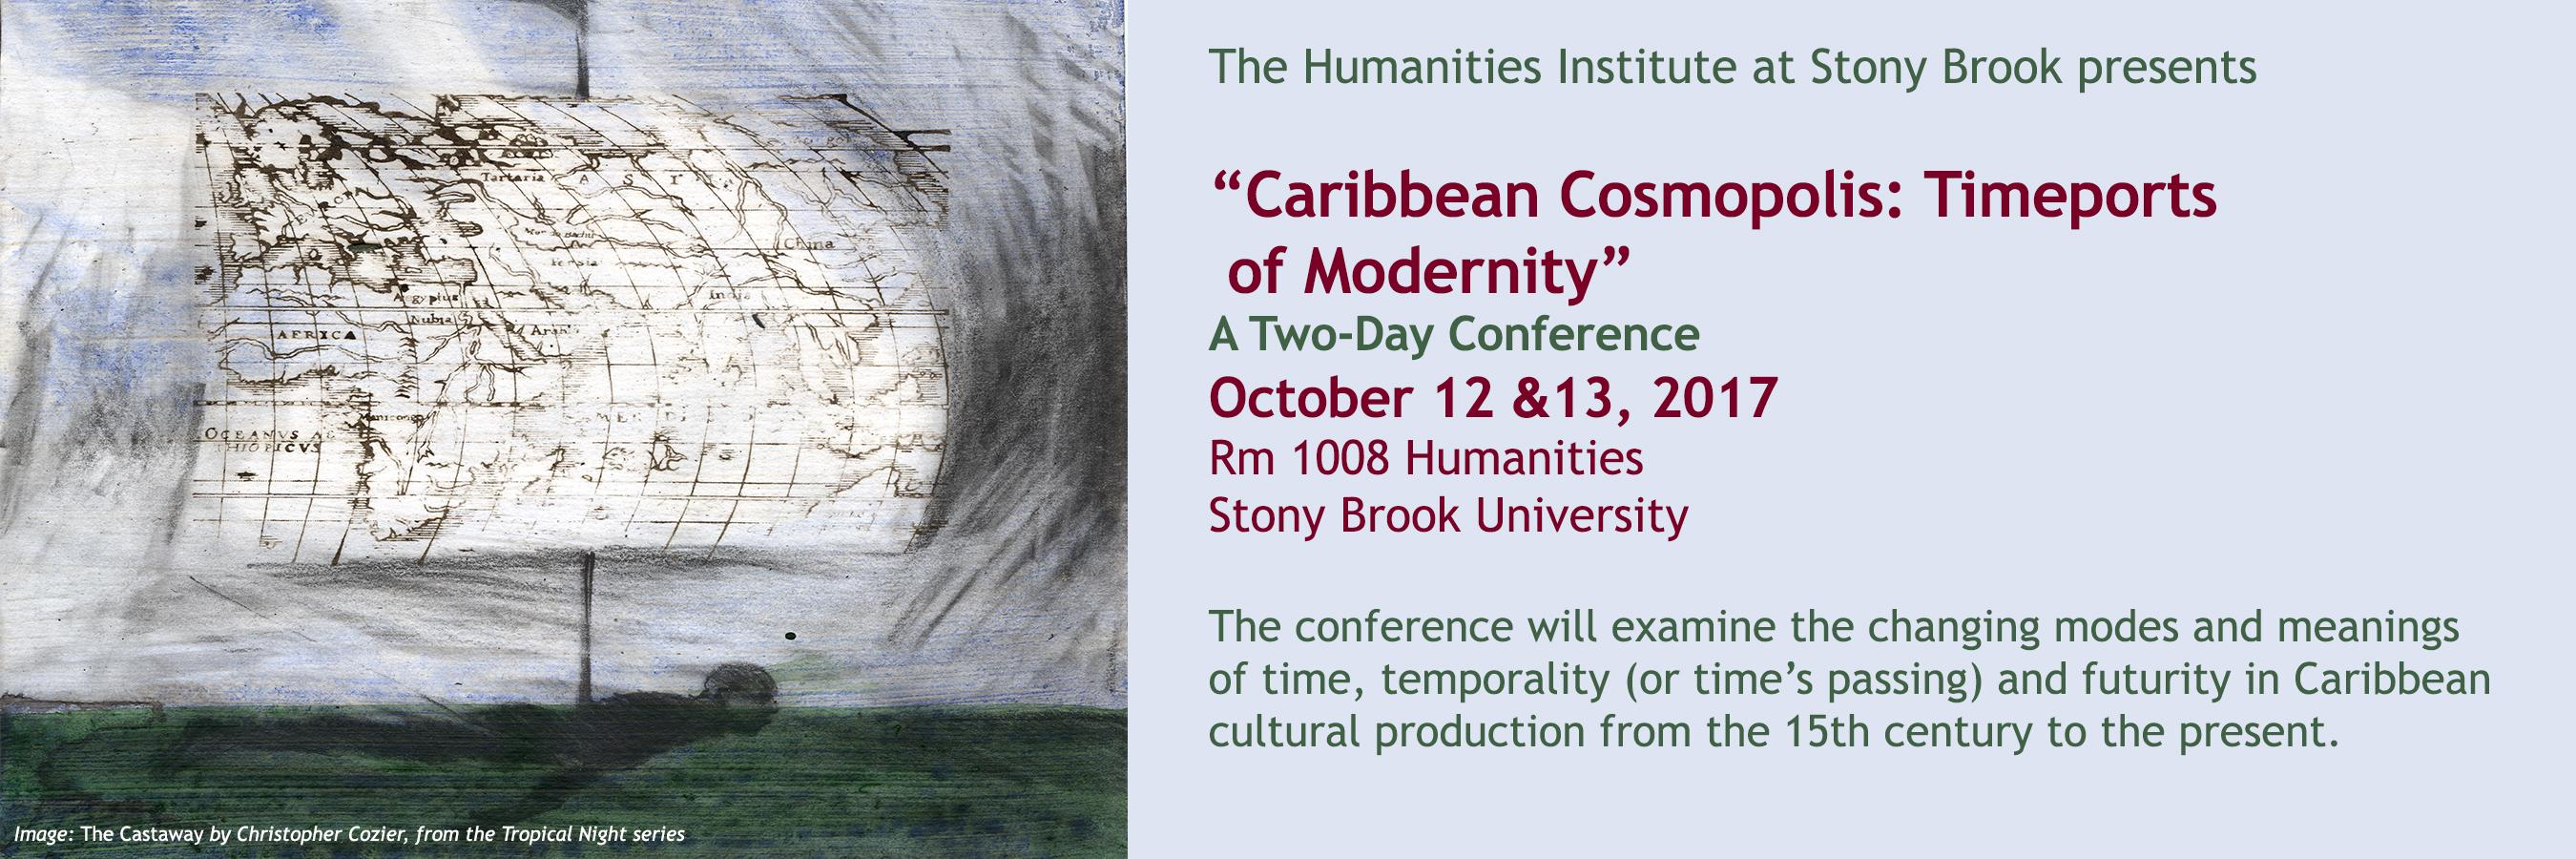 Caribbean Cosmopolis: Timeports of Modernity